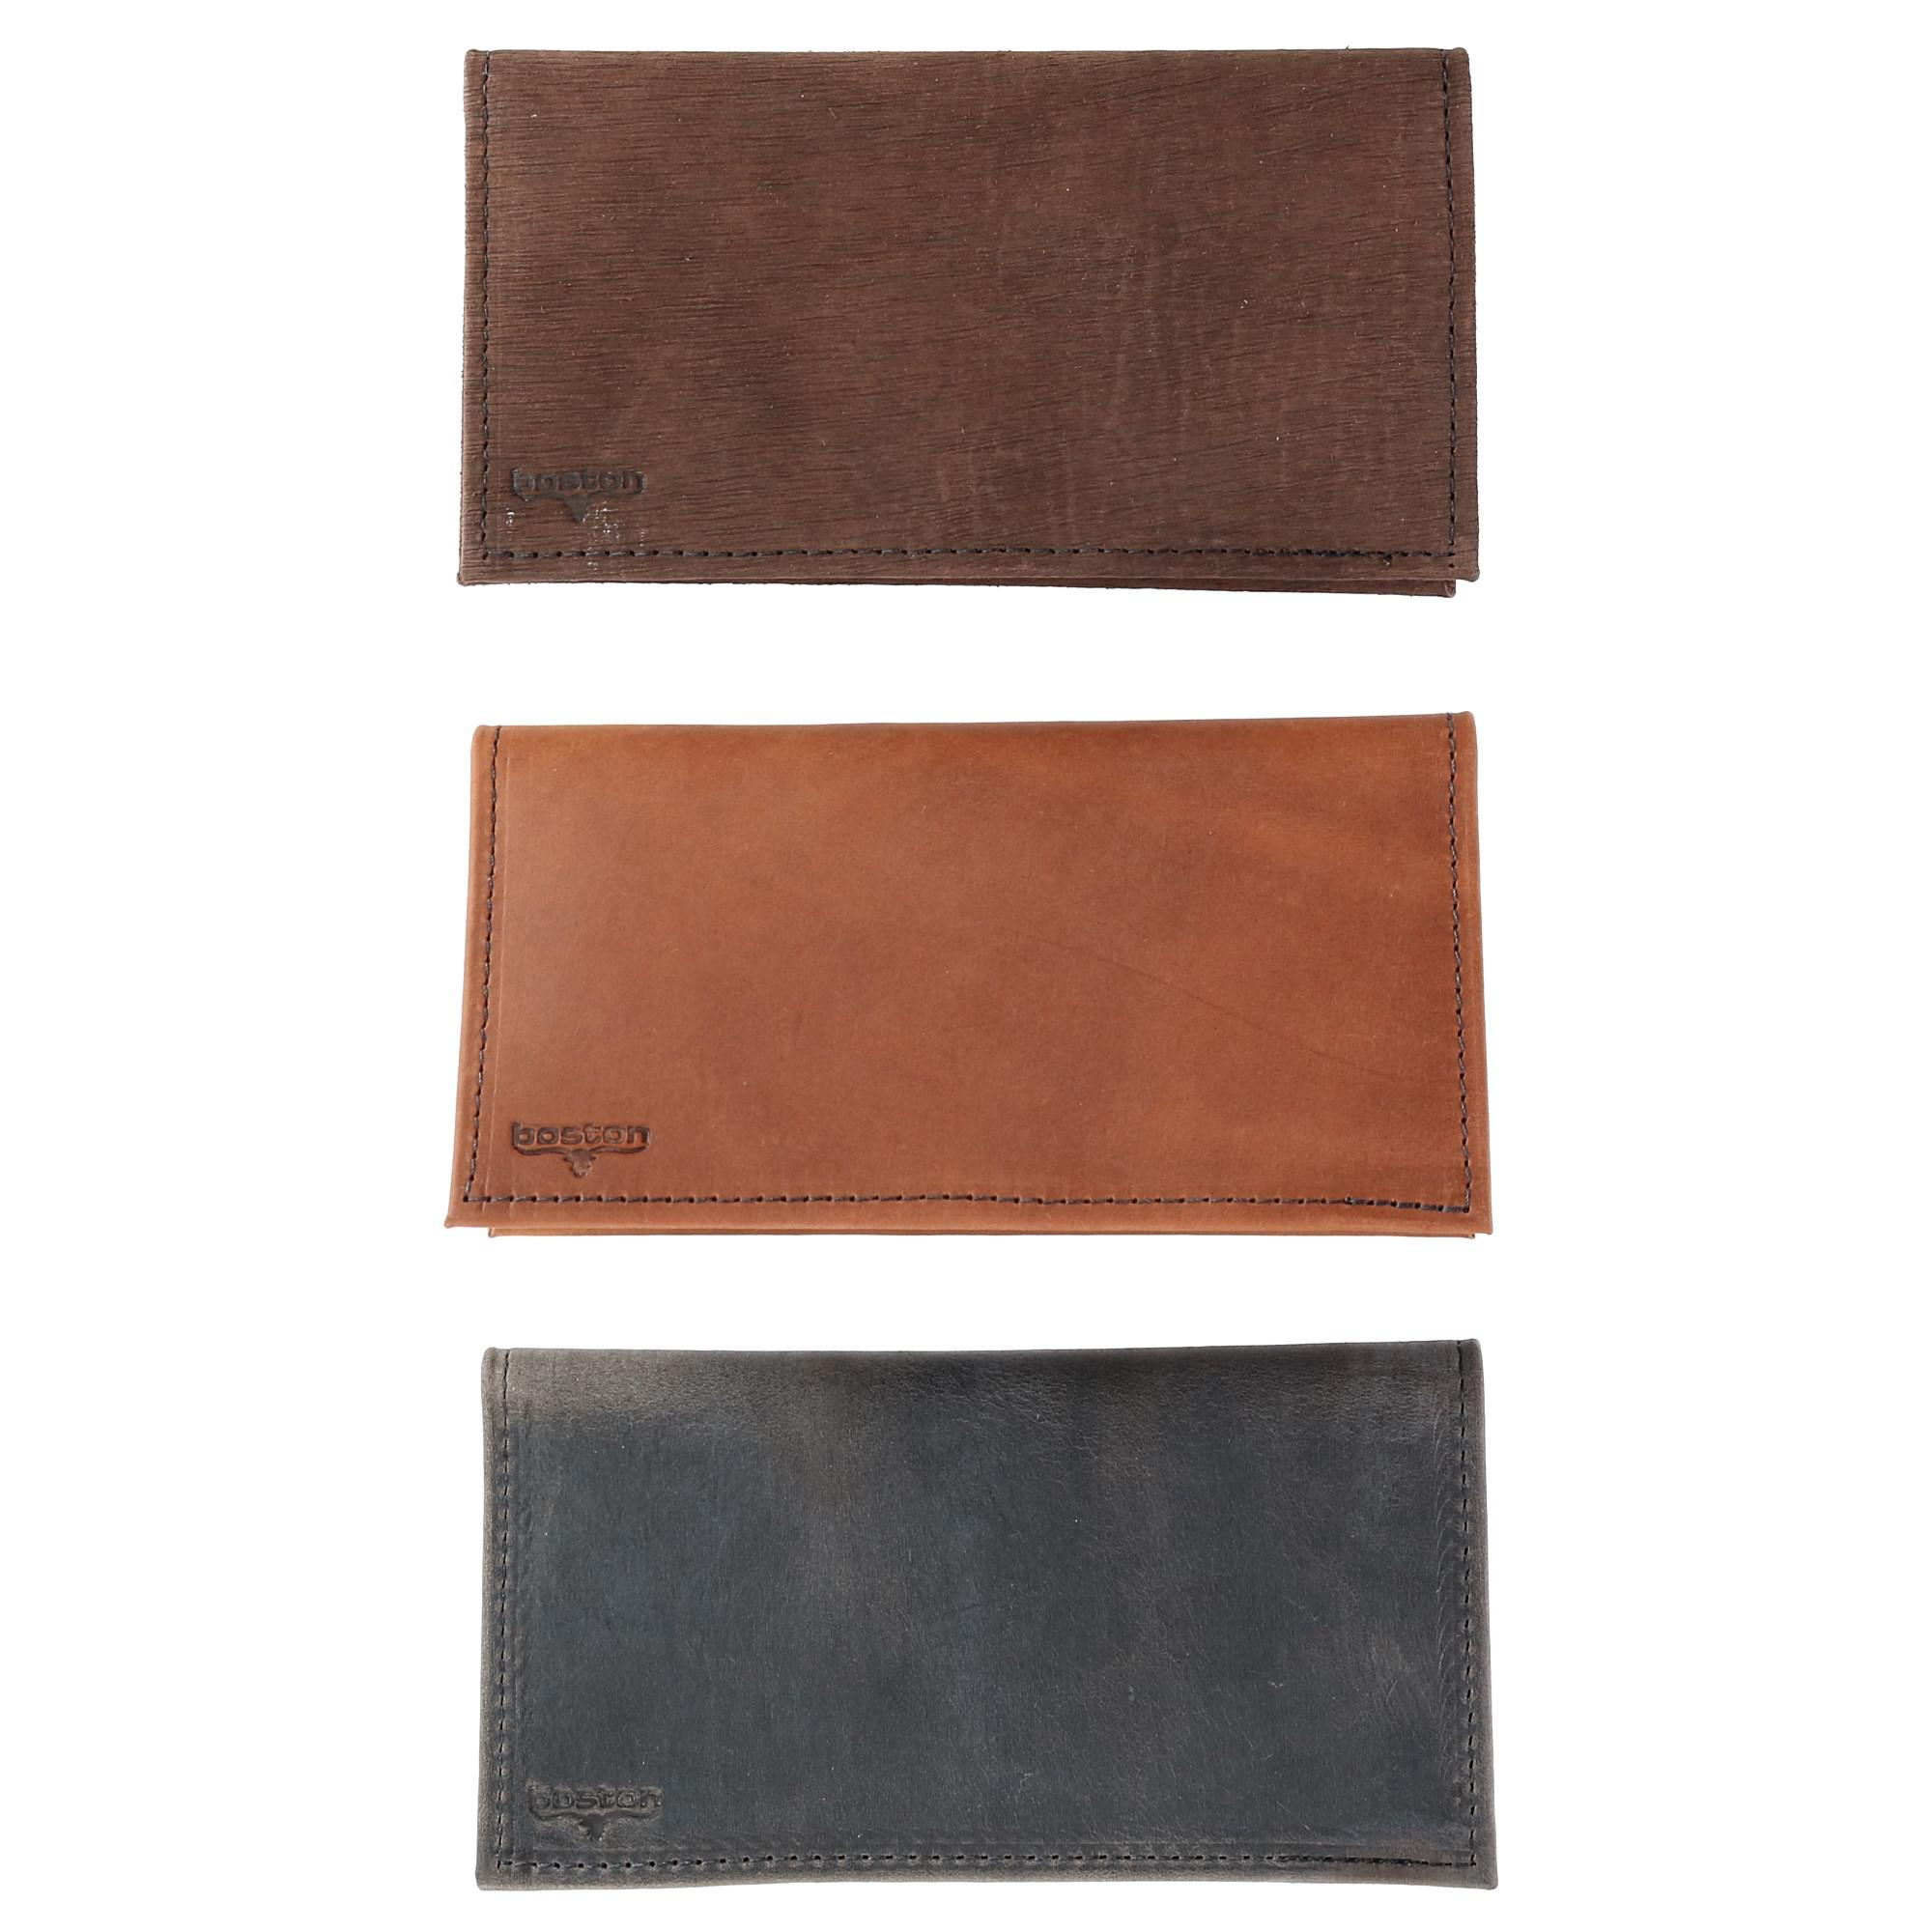 Boston Leather Multi Leather Checkbook Cover Set (Pack of 3) - image 6 of 6